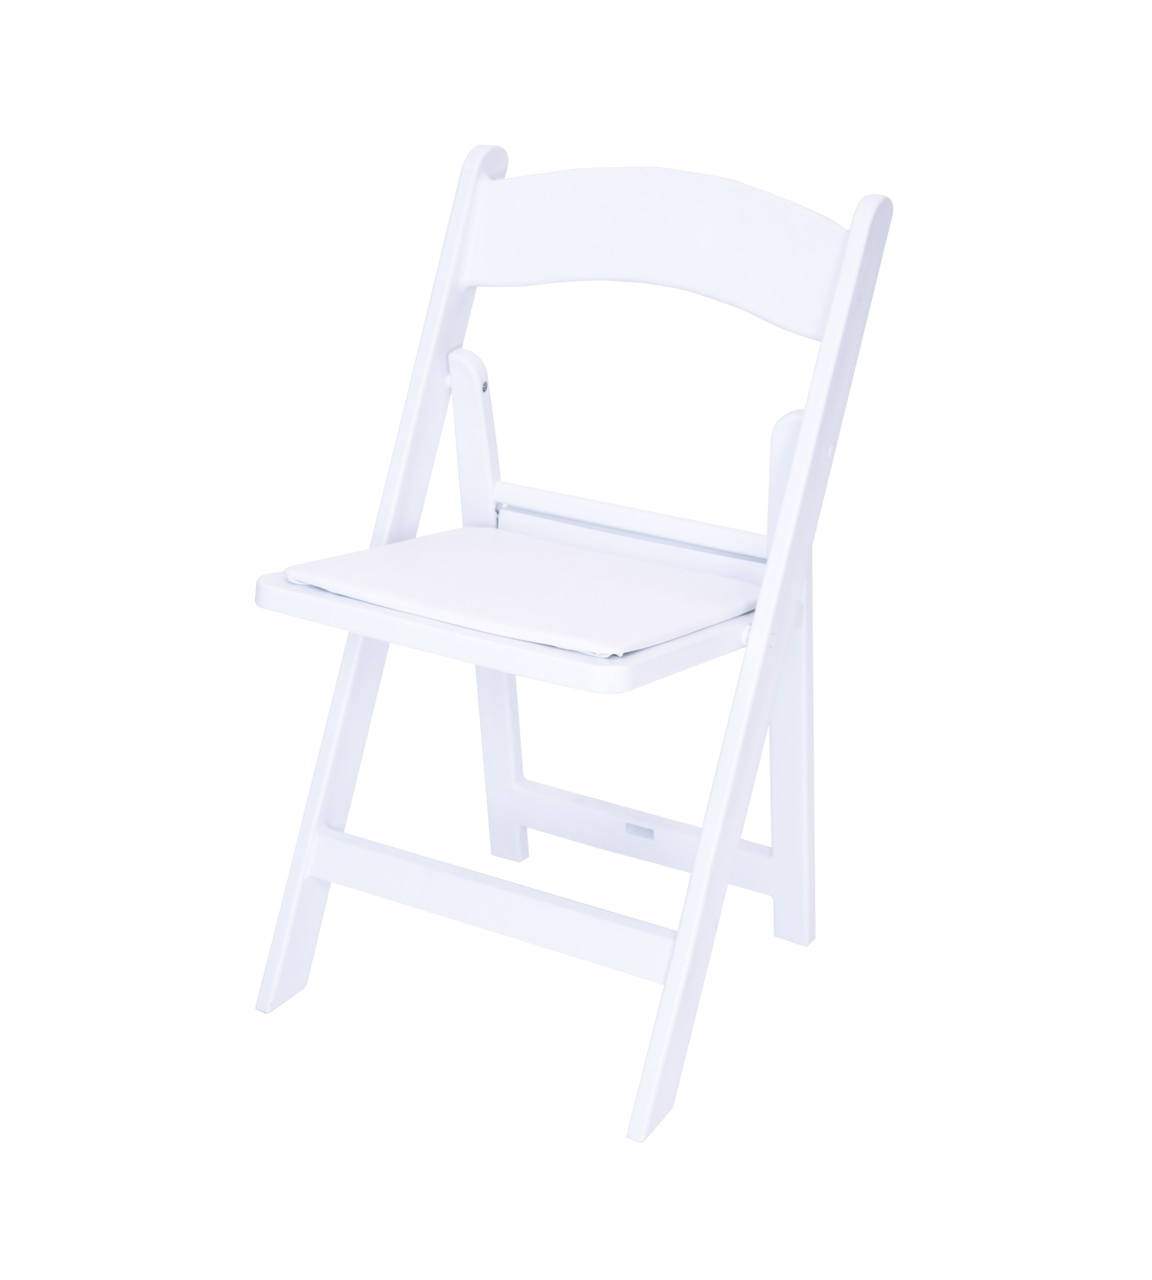 folding lawn chairs heavy duty kitchen table with rolling oversized classic series white resin chair 1000 lb capacity